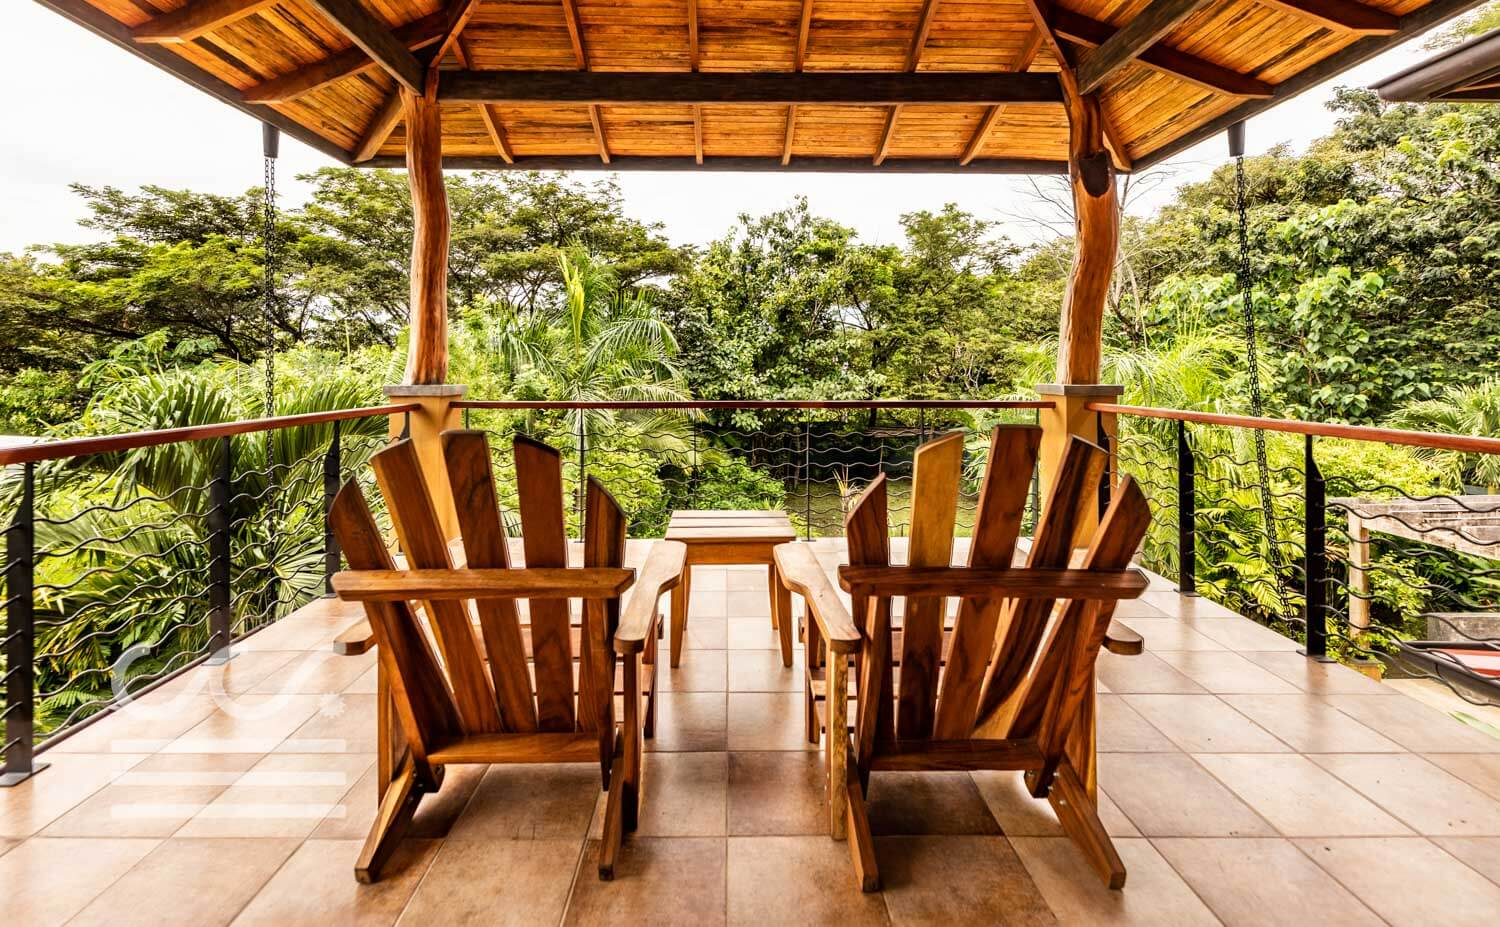 Endless-Summer-Wanderlust-Realty-Real-Estate-Rentals-Nosara-Costa-Rica-18.jpg